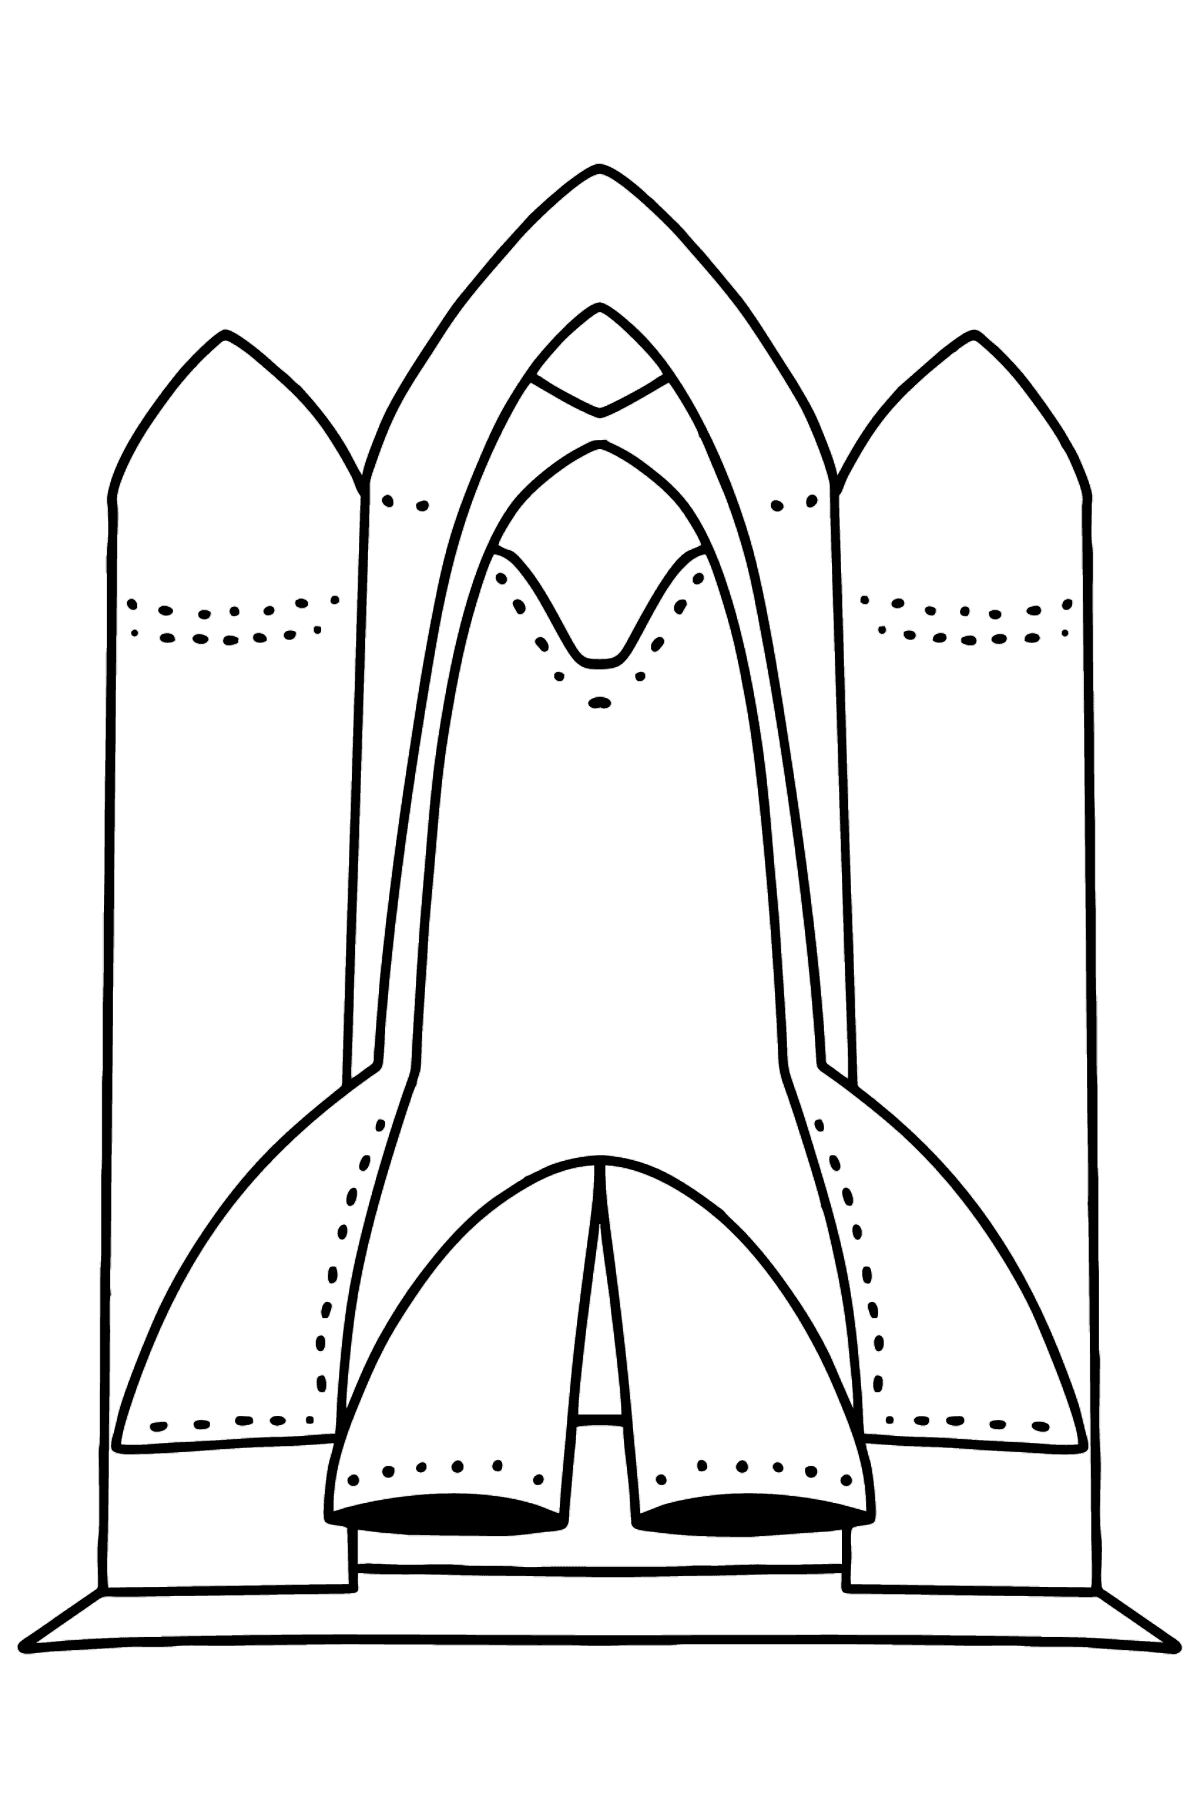 Shuttle coloring page - Coloring Pages for Kids